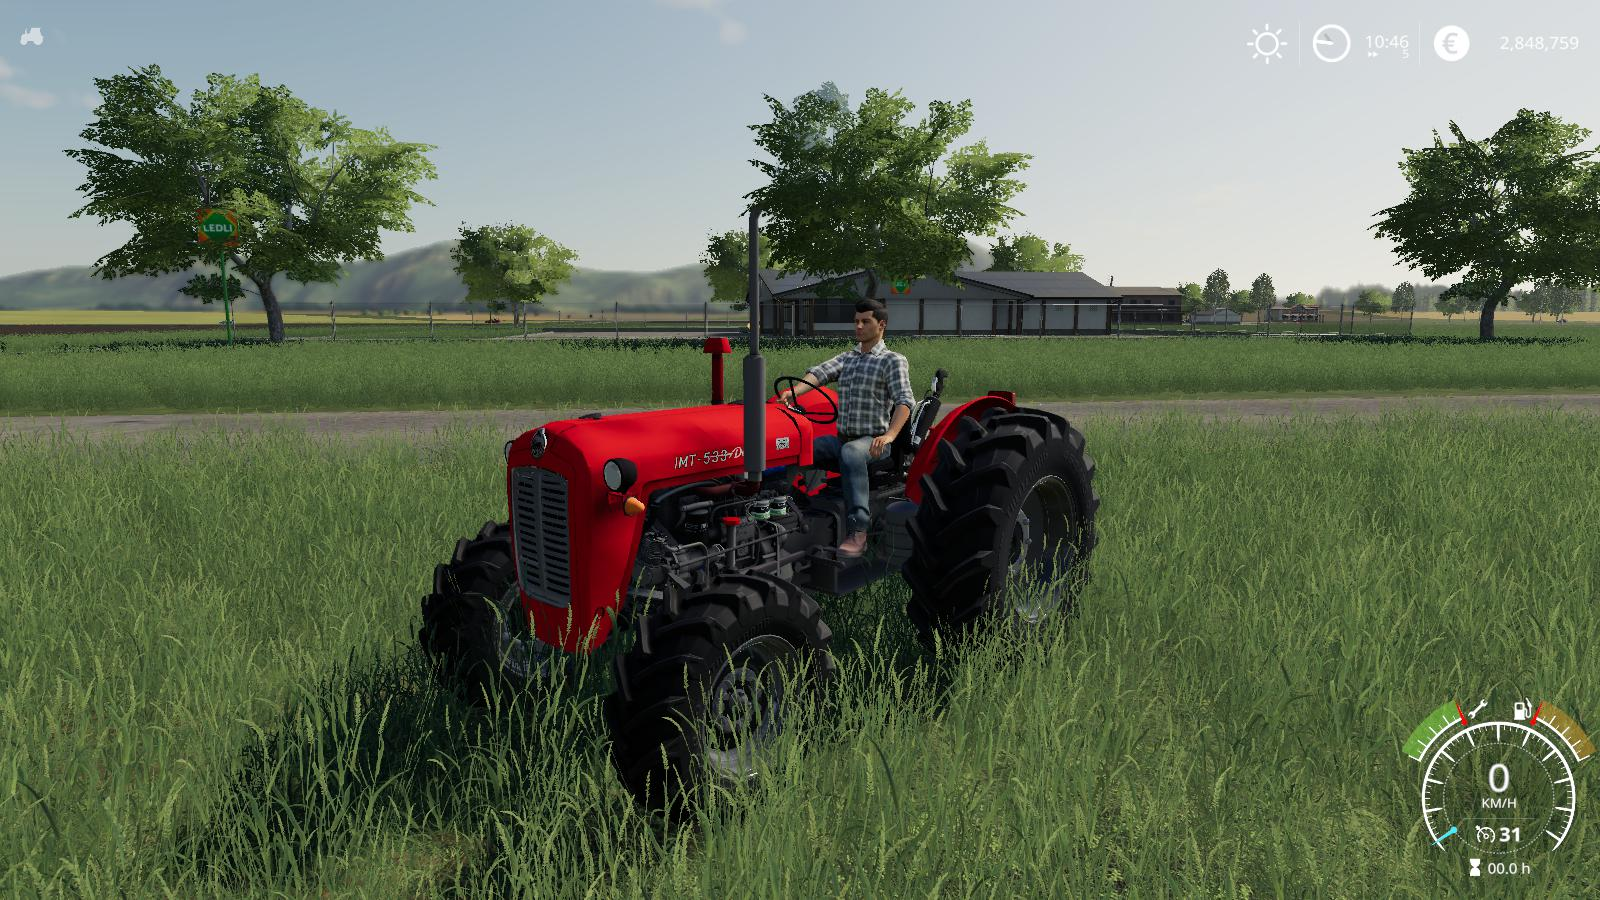 IMT 533 v 1 0 | FS19 mods, Farming simulator 19 mods